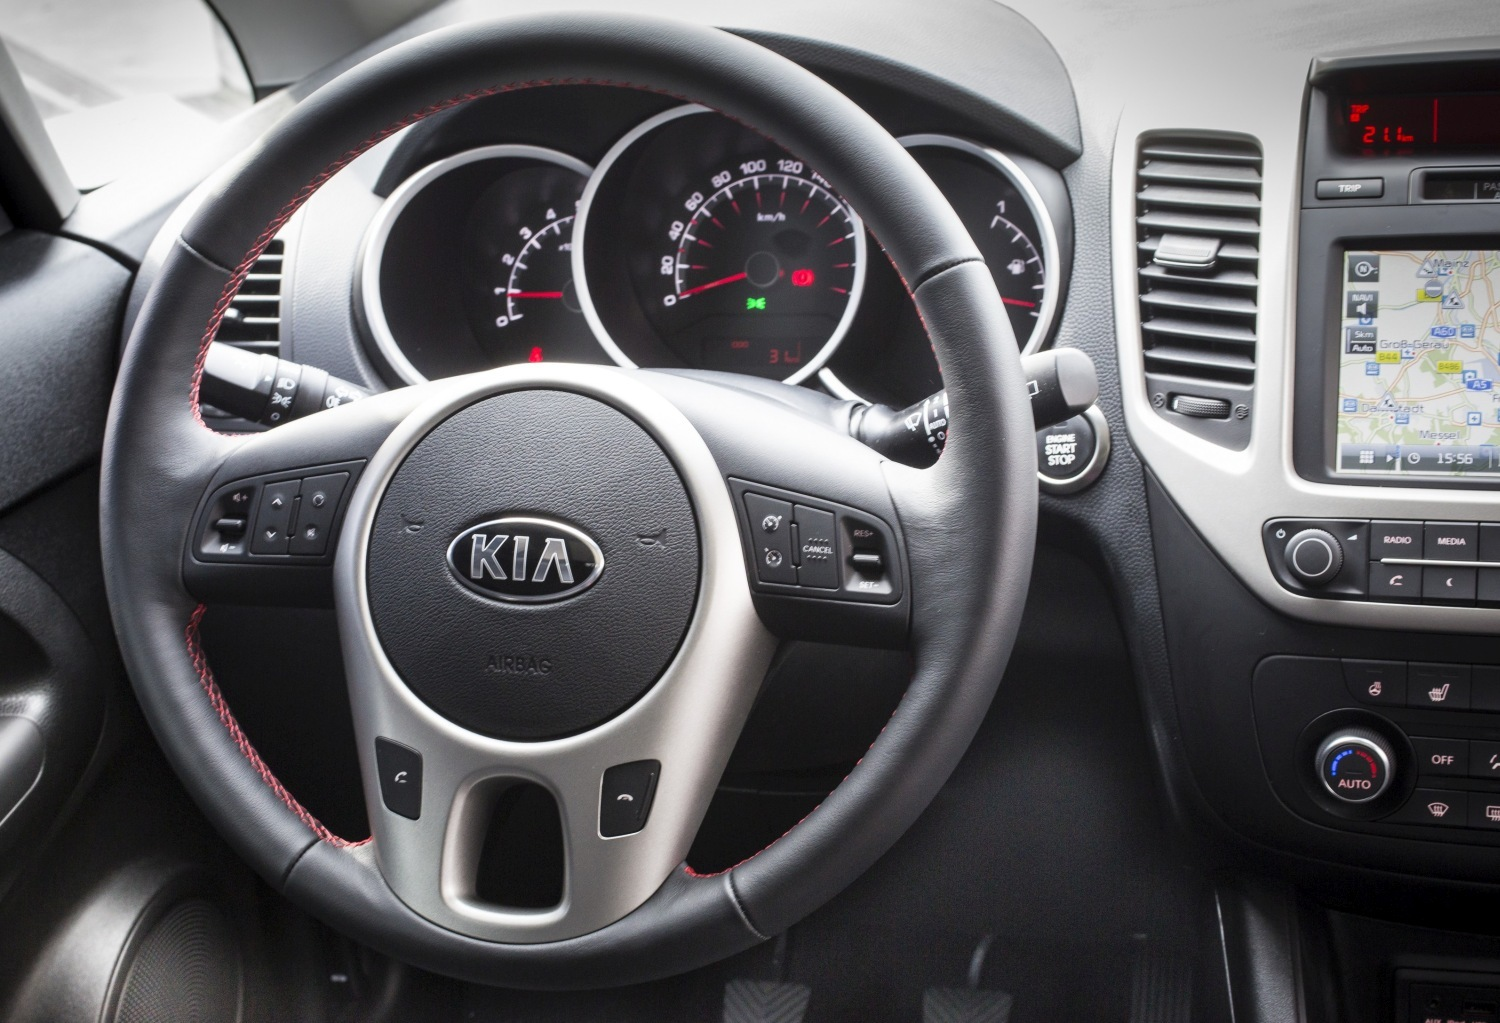 stunning-design-of-the-black-and-silver-accents-steering-ideas-with-black-dash-as-the-kia-venga-2015-interior-ideas